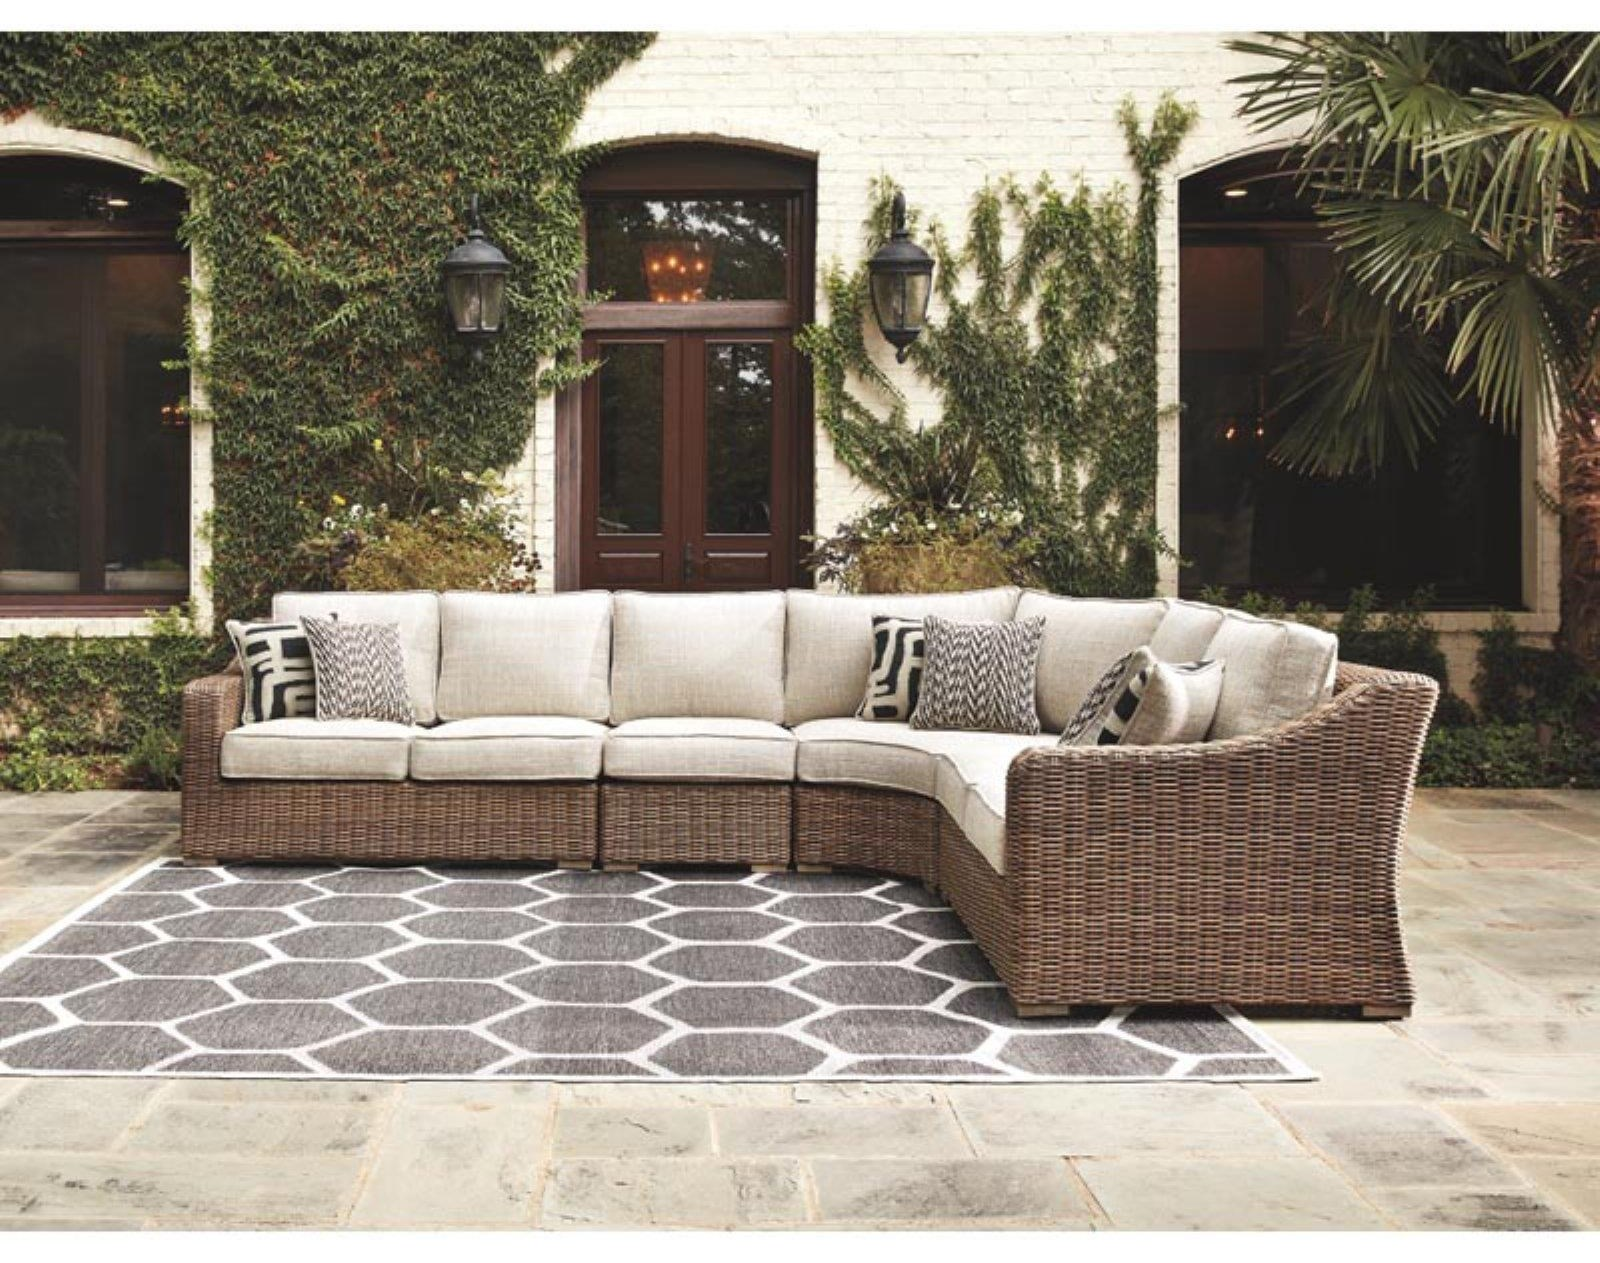 Beachcroft Outdoor Patio Sectional Sofa by Ashley (Signature Design) at Johnny Janosik